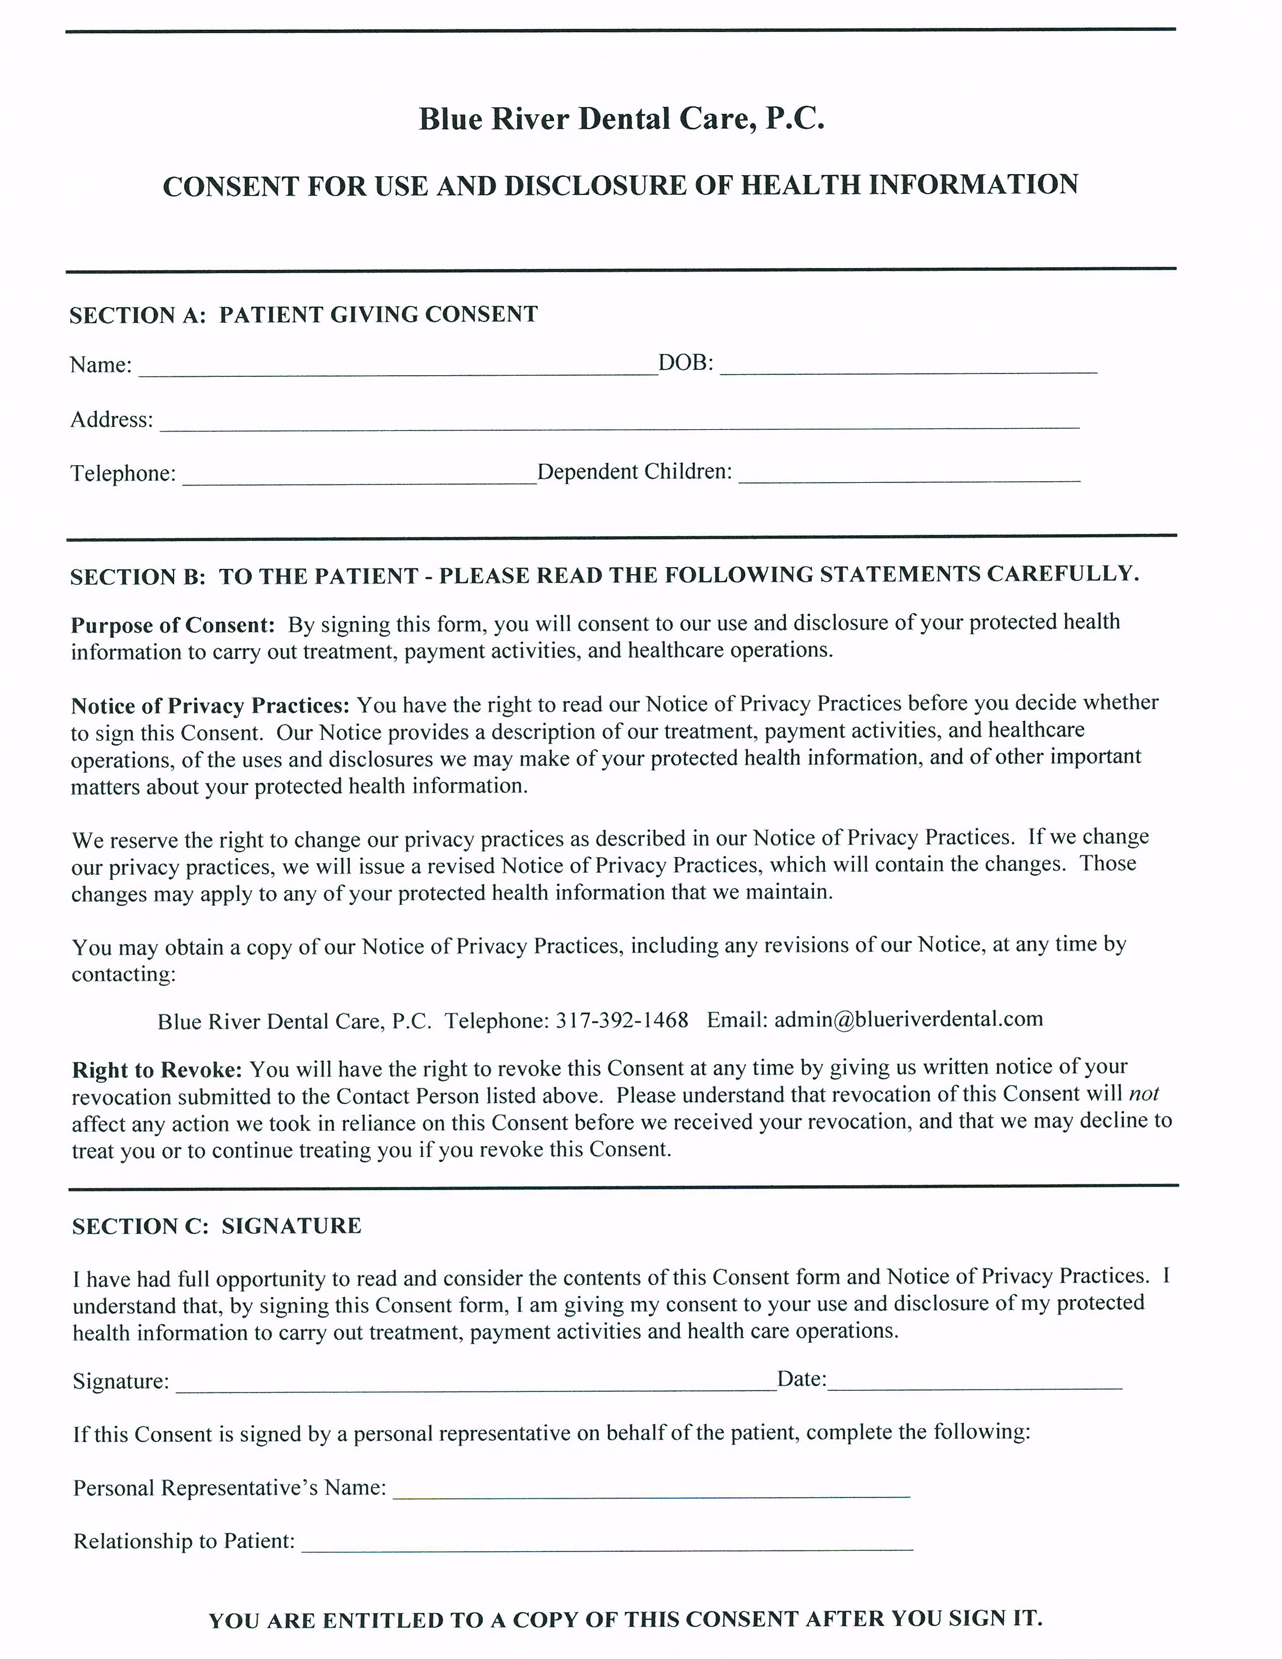 Hipaa Privacy Agreement Form